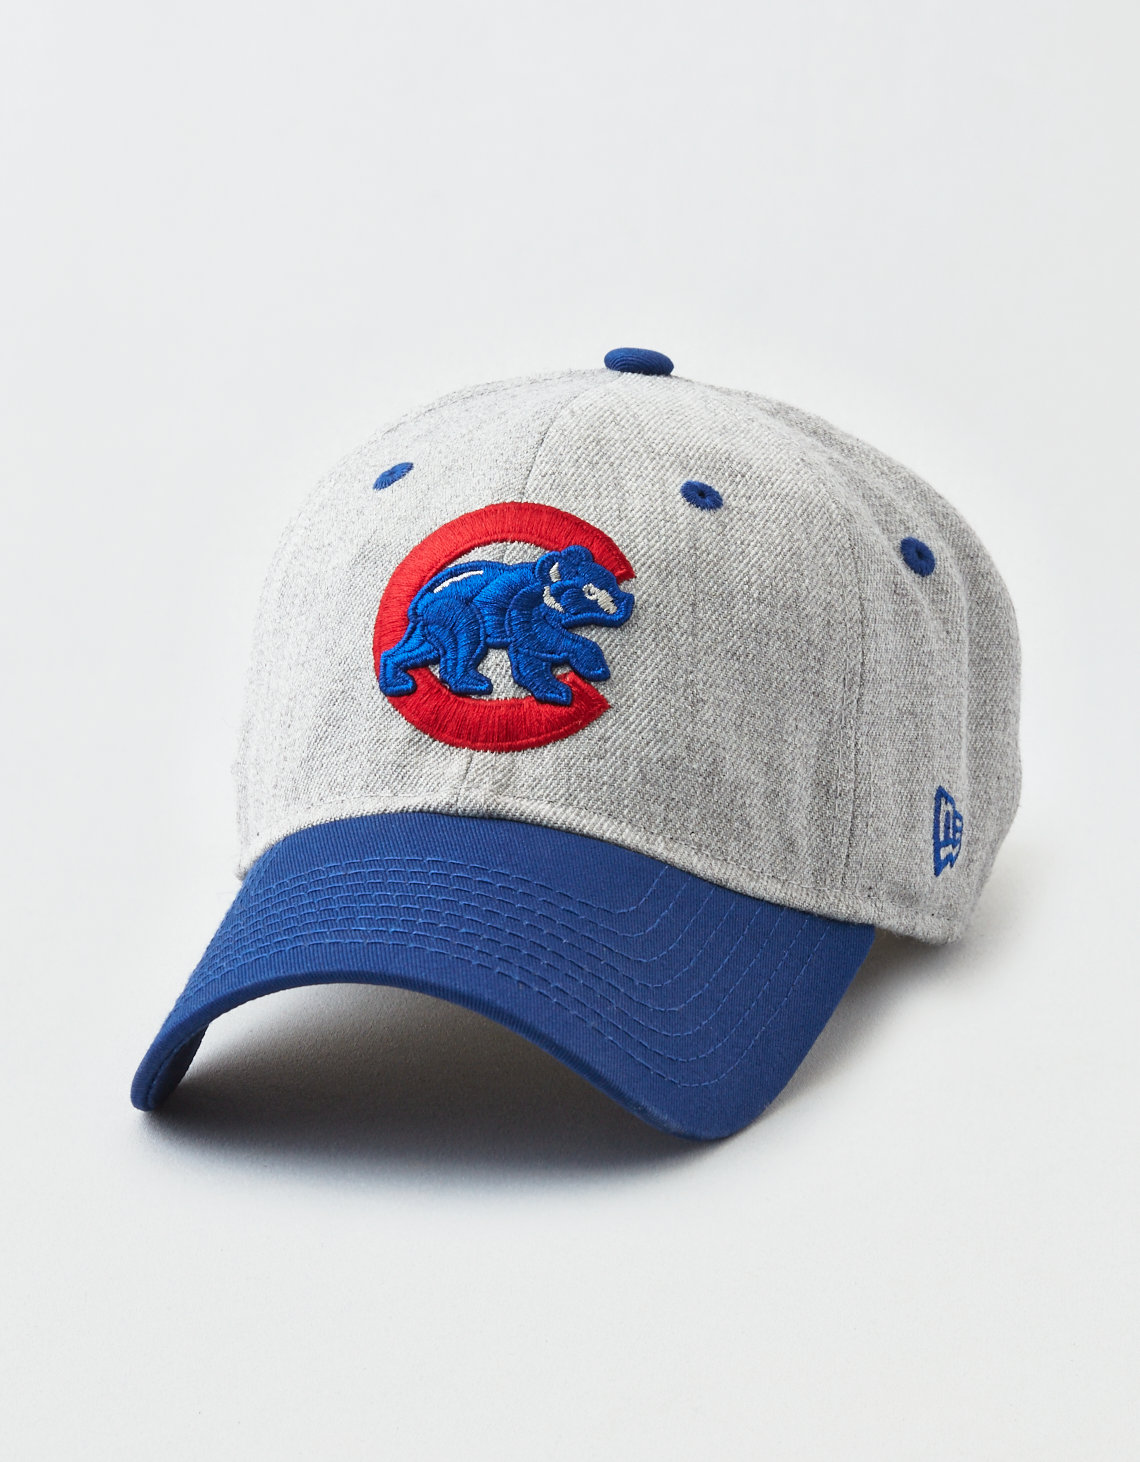 ... New Era X Tailgate Chicago Cubs Baseball Hat. Placeholder image.  Product Image 2ef685bddd3